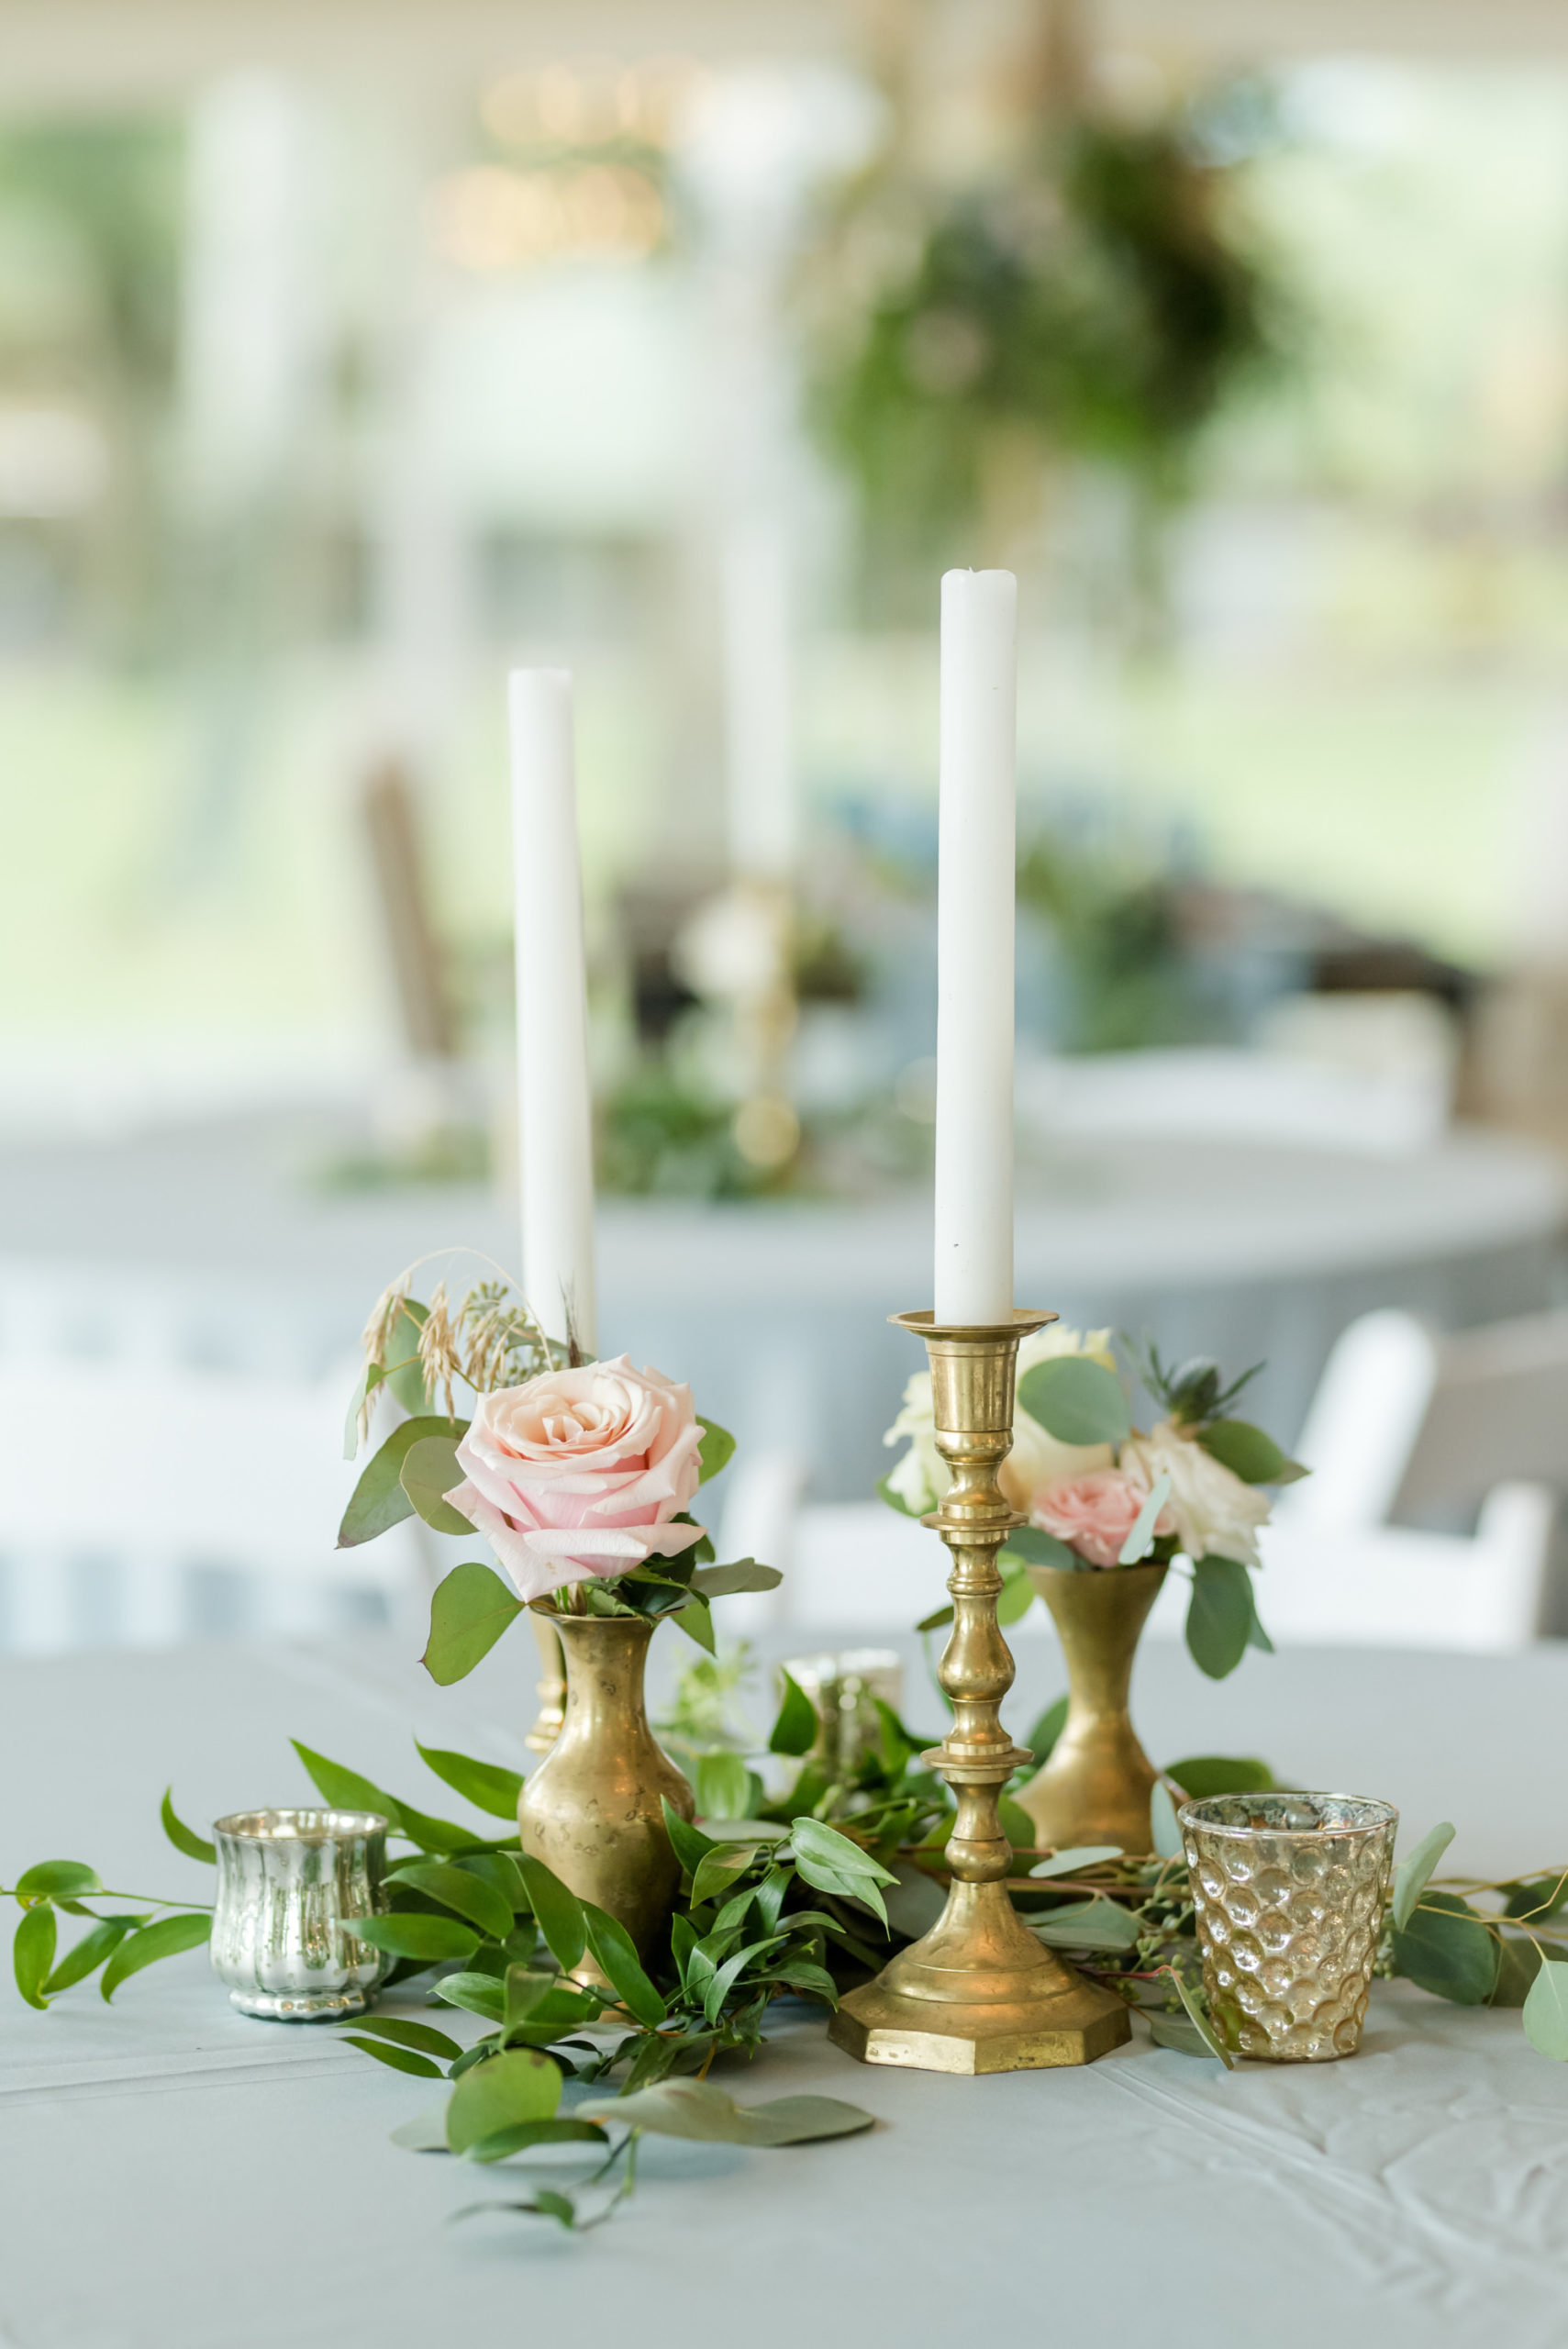 Dusty Rose Styled Wedding Shoot, Gold Antique Candlesticks, Low Gold Flower Vases with Blush Pink Roses, Greenery Leaf Centerpiece   Tampa Bay Wedding Planner Elegant Affairs by Design